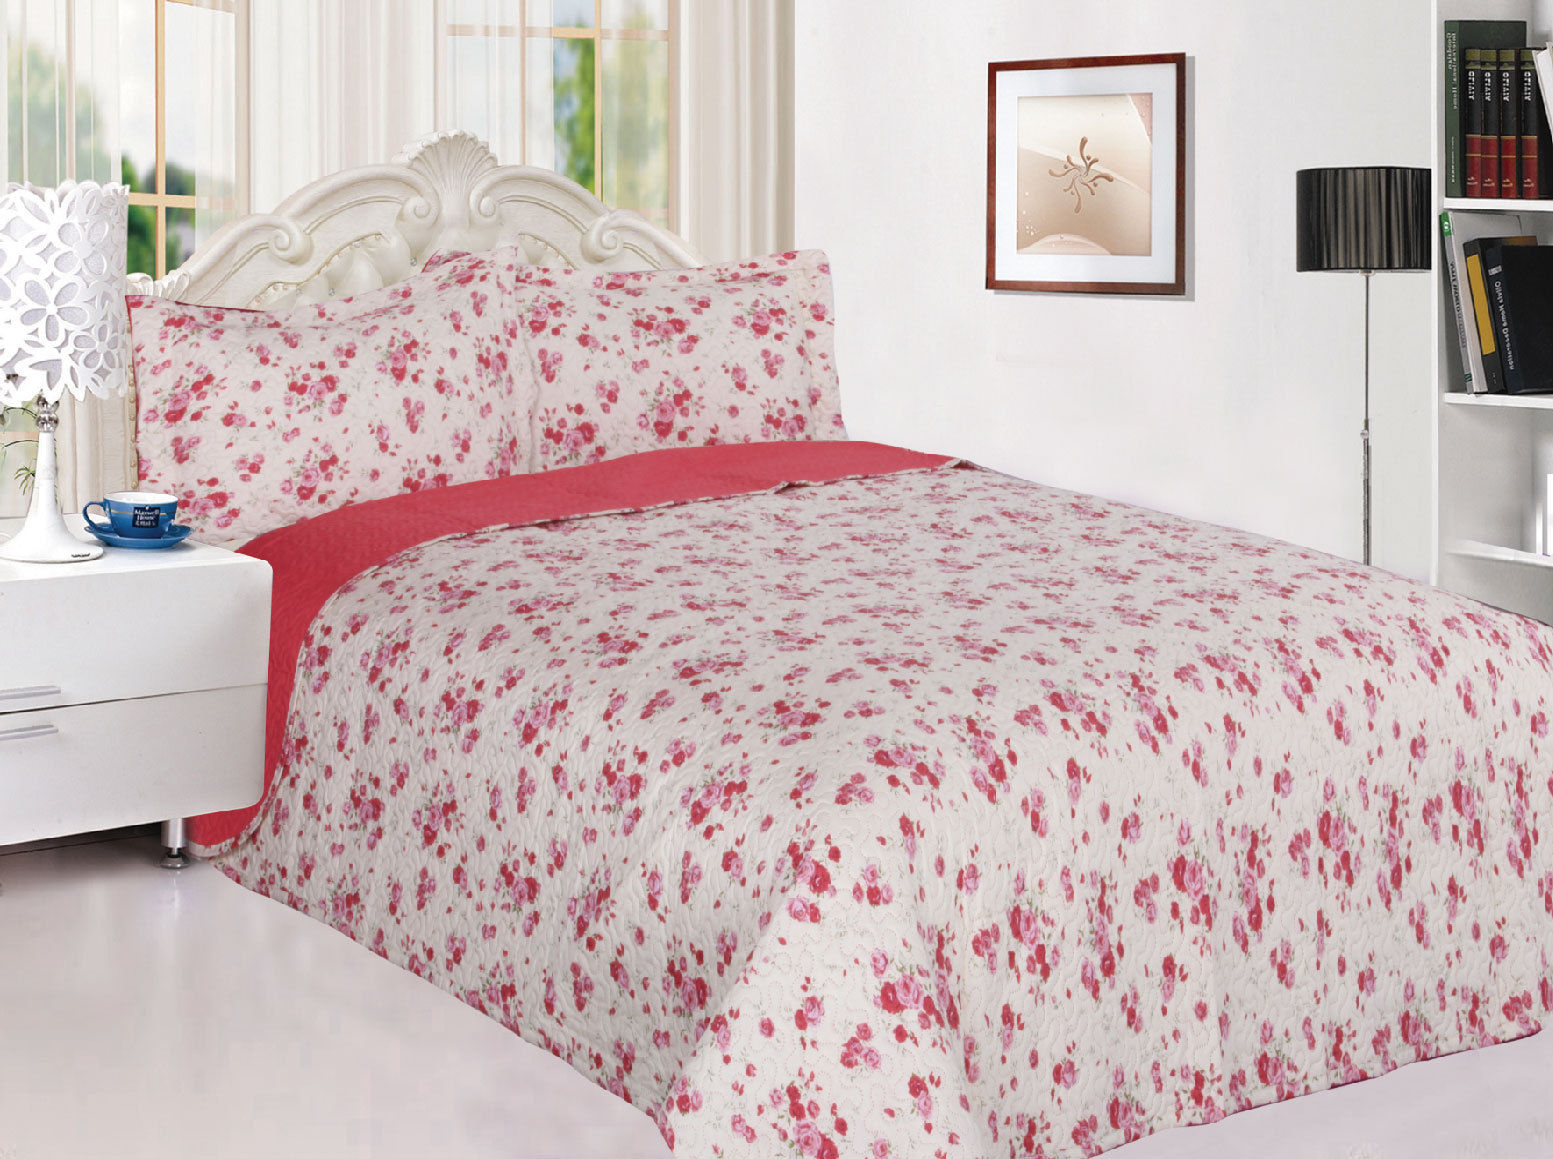 3-Piece Reversible Quilted Printed Bedspread Coverlet Pink Rose Flowers Twin Size by